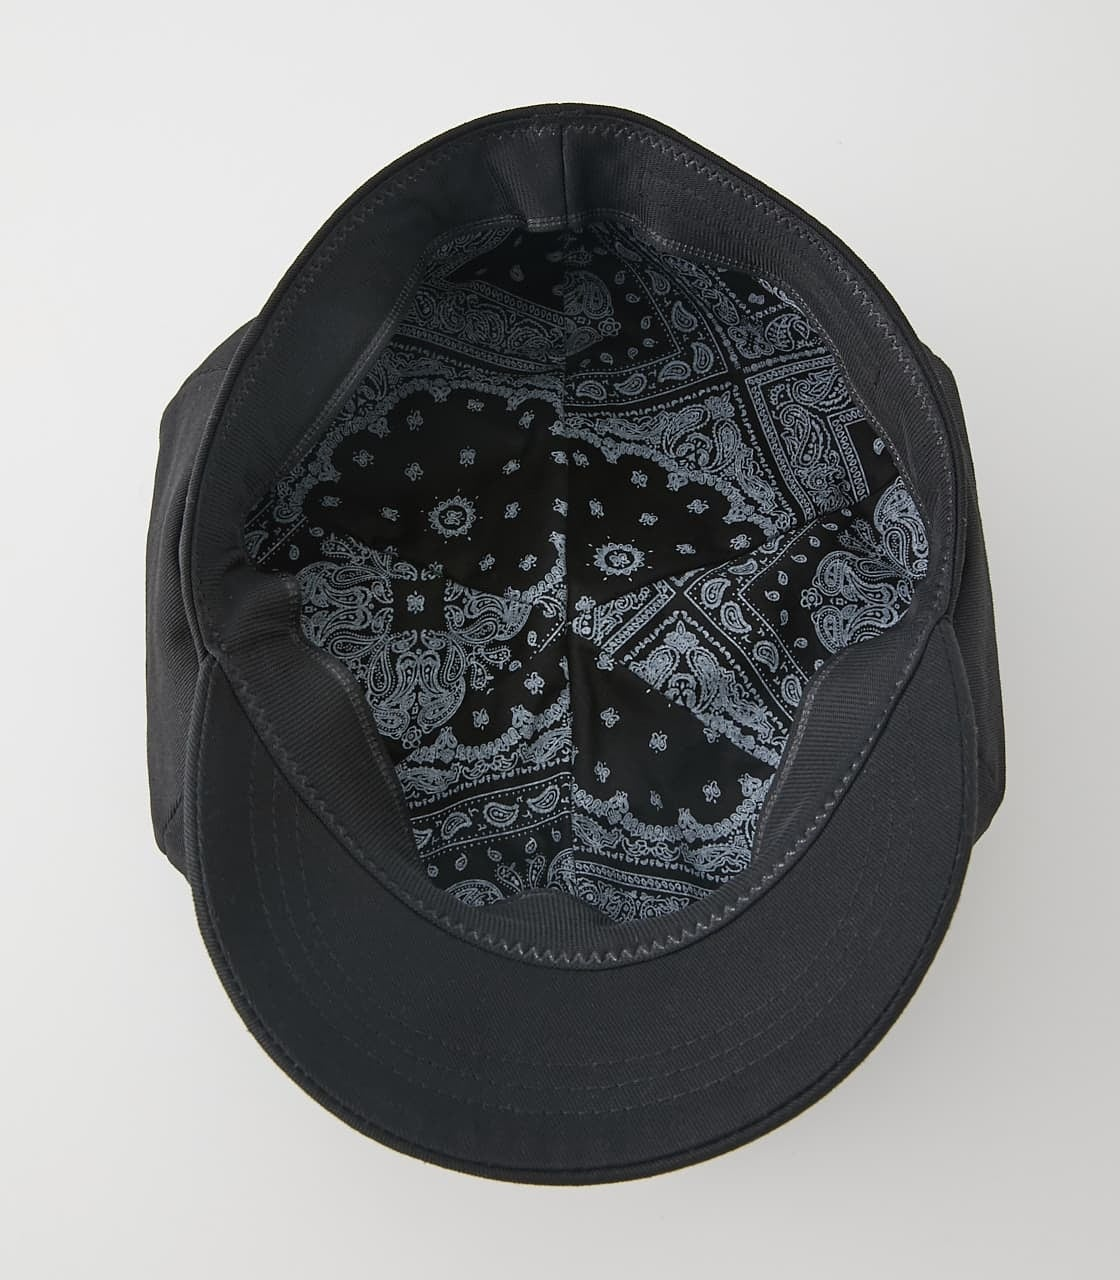 COTTON TWILL CASQUETTE/コットンツイルキャスケット 詳細画像 BLK 8